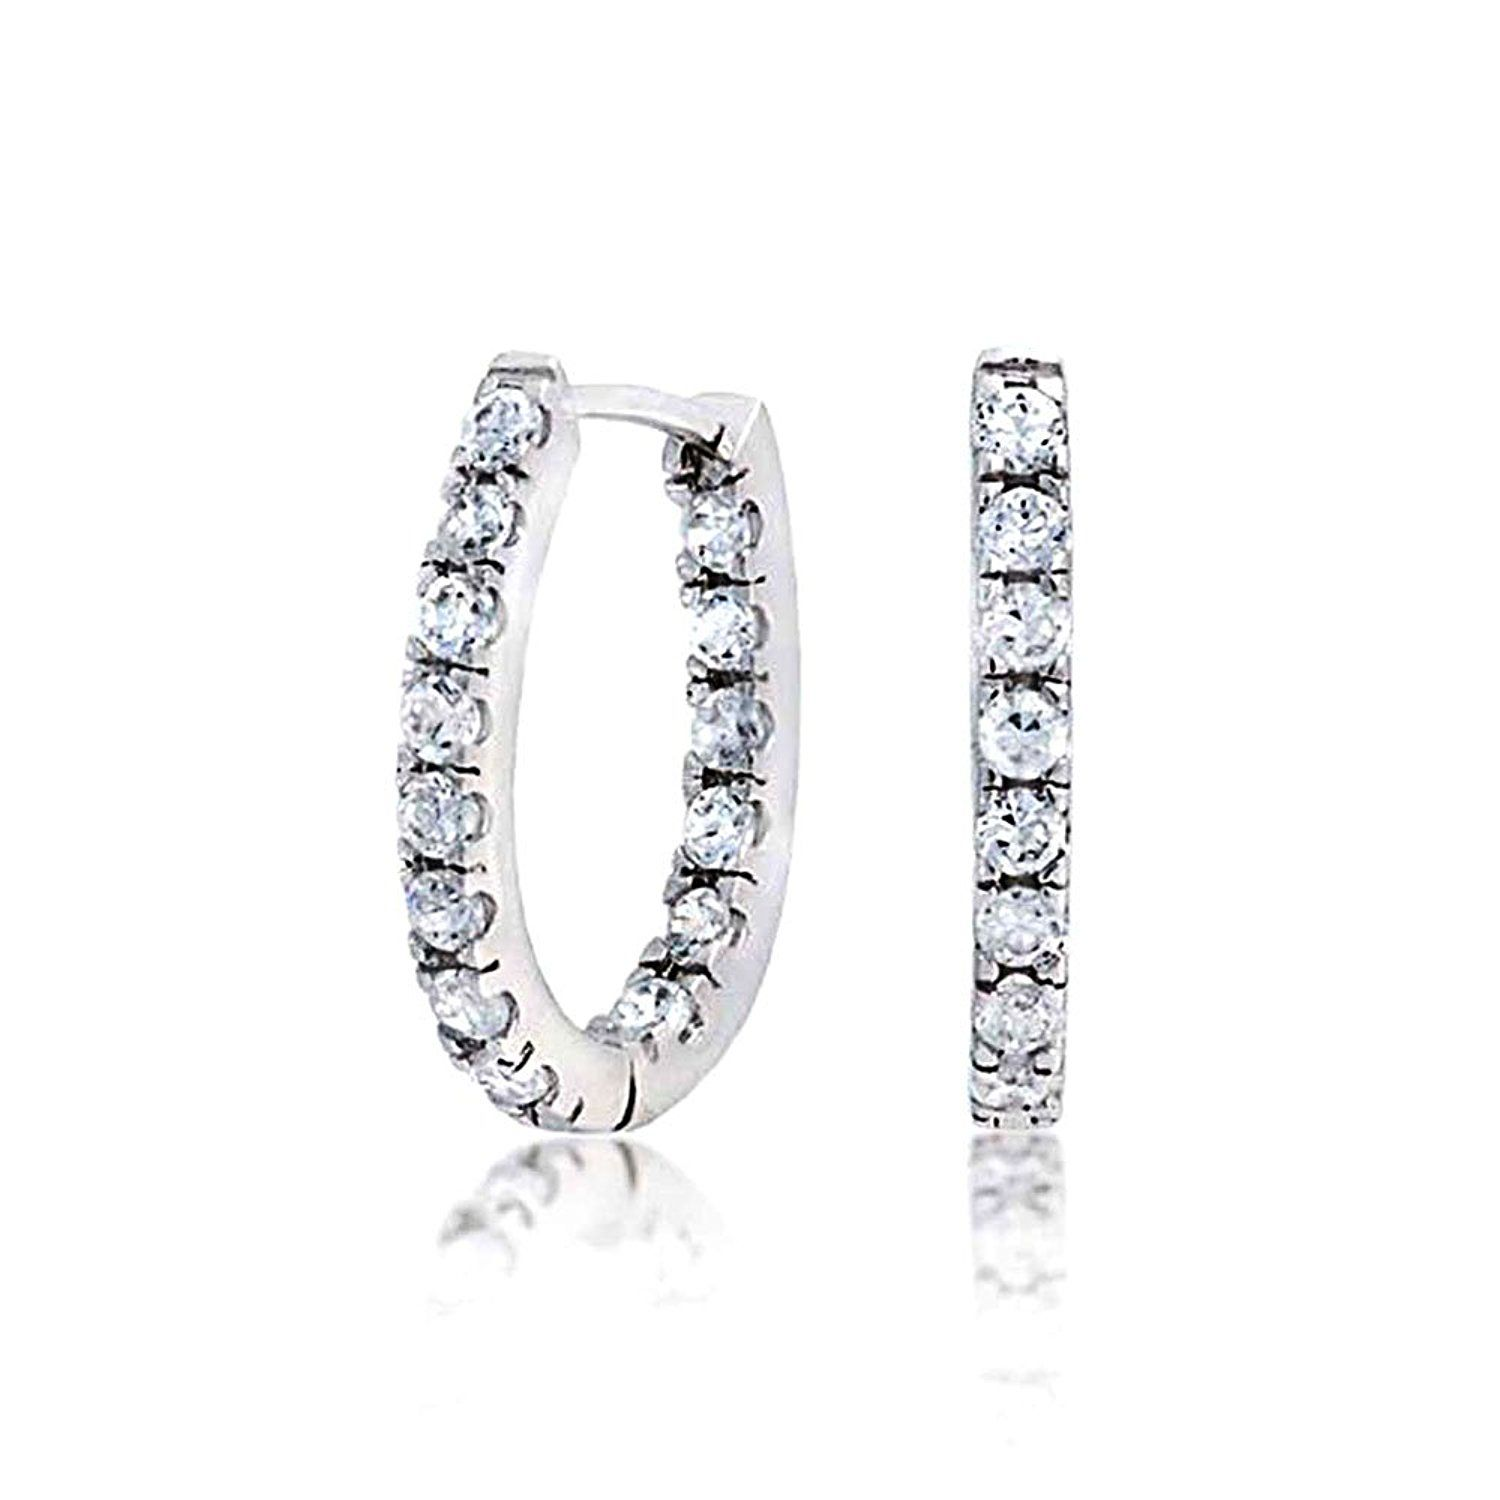 f3afb44534cd1 Bling Jewelry Pave CZ Thin Inside Out Sterling Silver Huggie Hoop ...